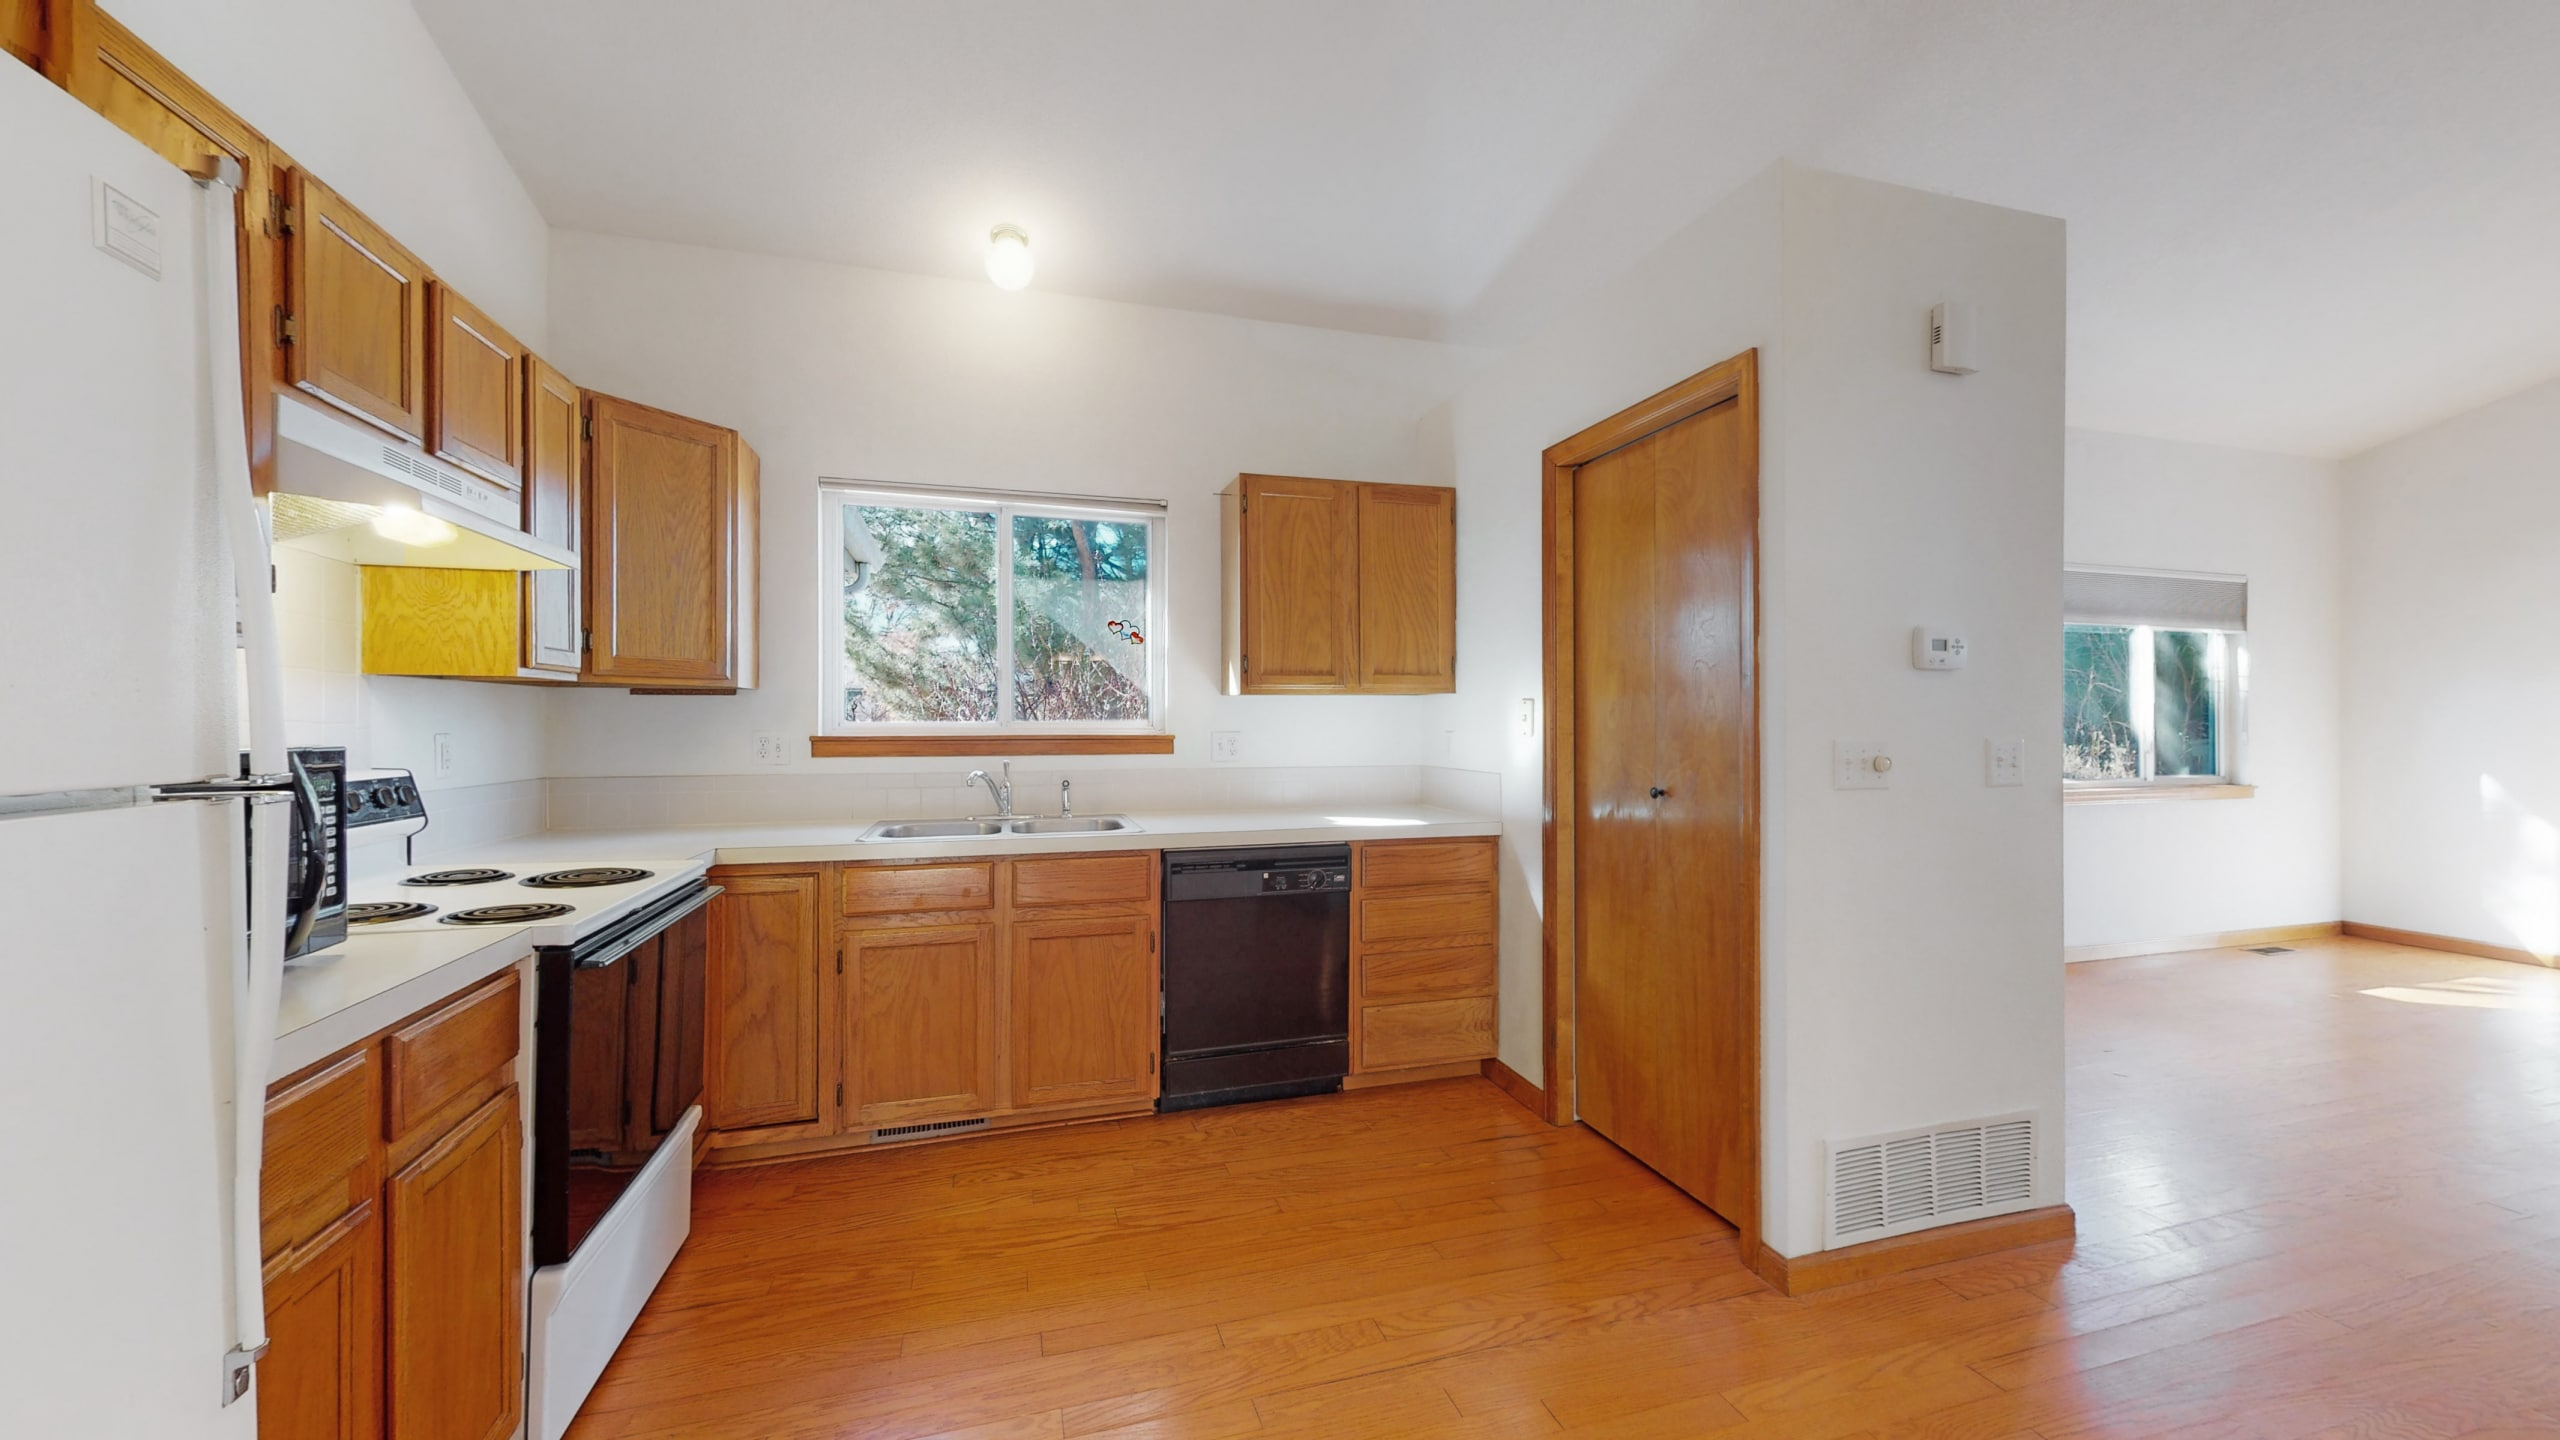 Kitchen with pantry, dishwasher, window over sink